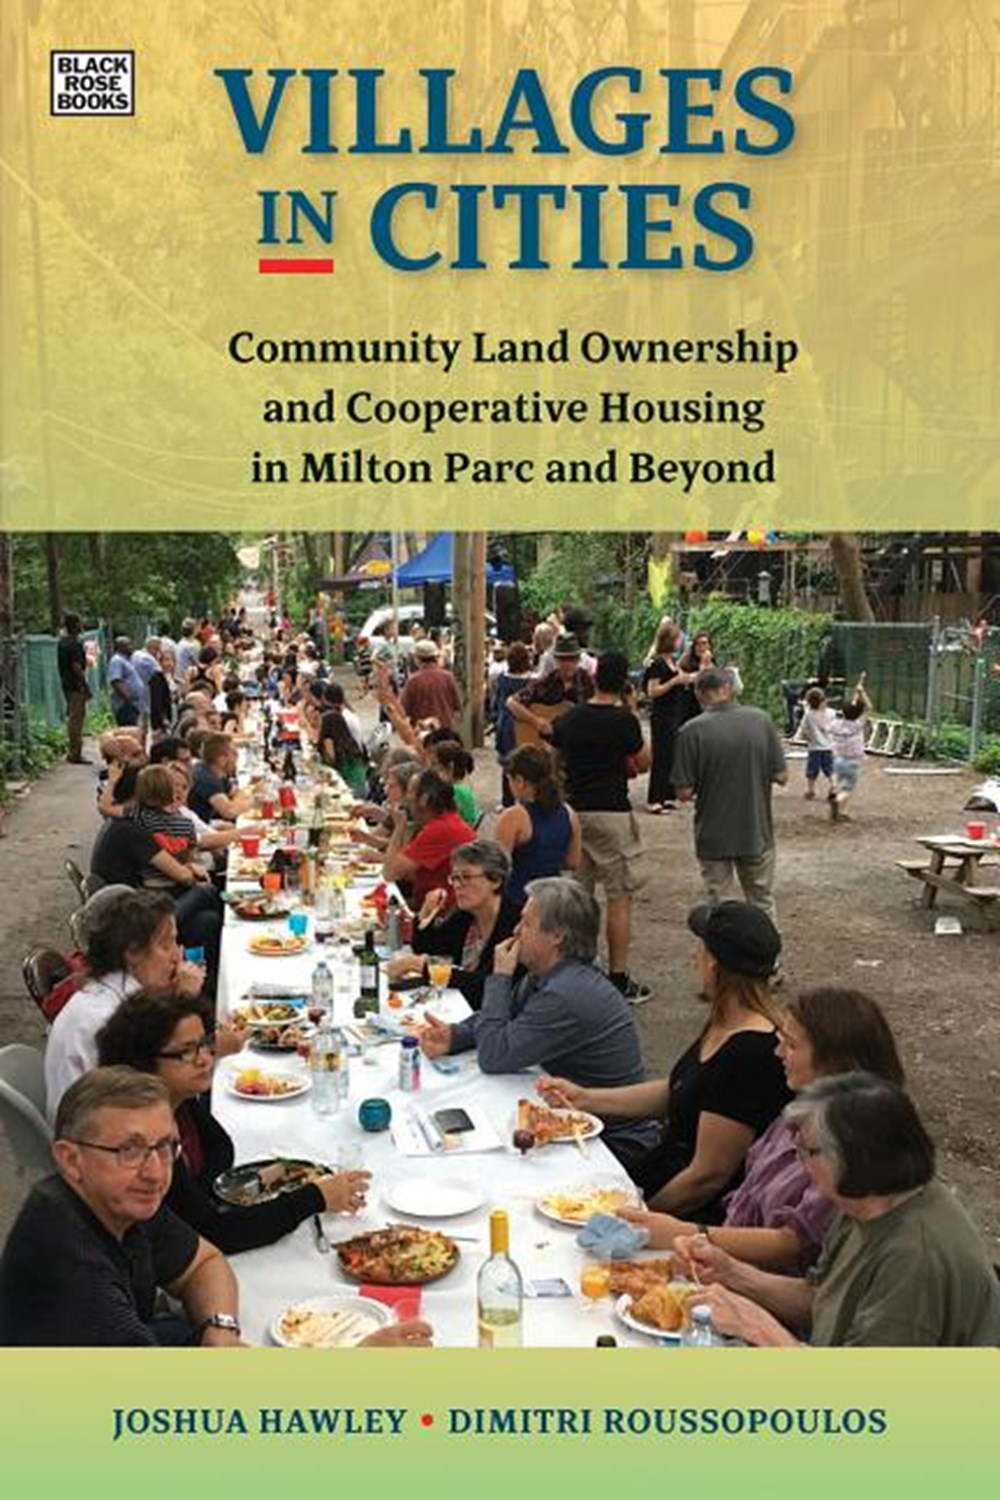 Villages in Cities Community Land Ownership and Cooperative Housing in Milton Parc and Beyond